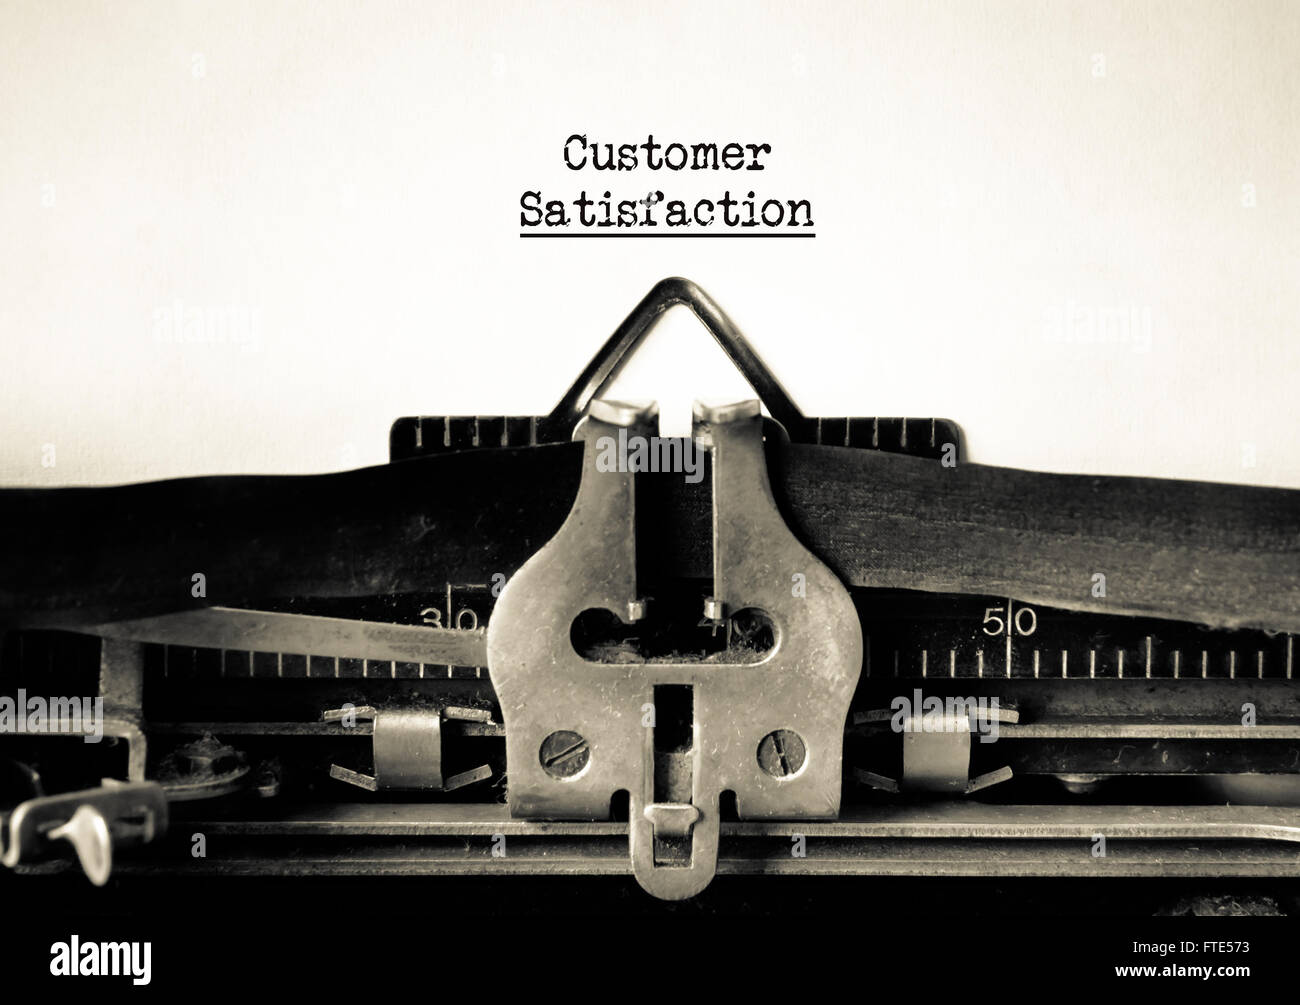 Customers satisfaction and customer service motto on a vintage typewriter - Stock Image